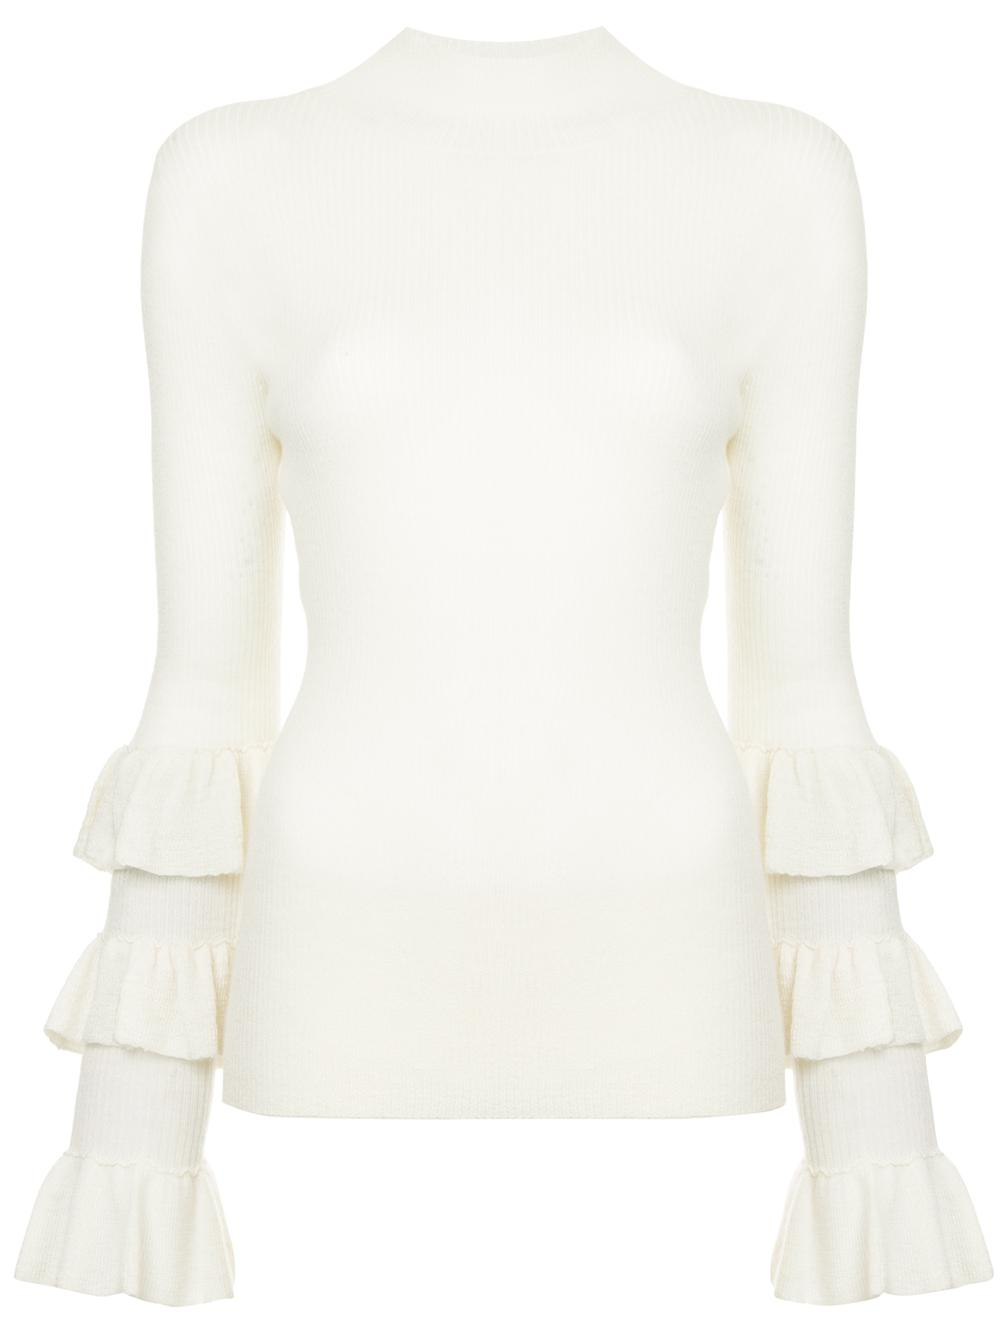 Naboo Multi Ruffle Sleeve Sweater Item # AW18 T45